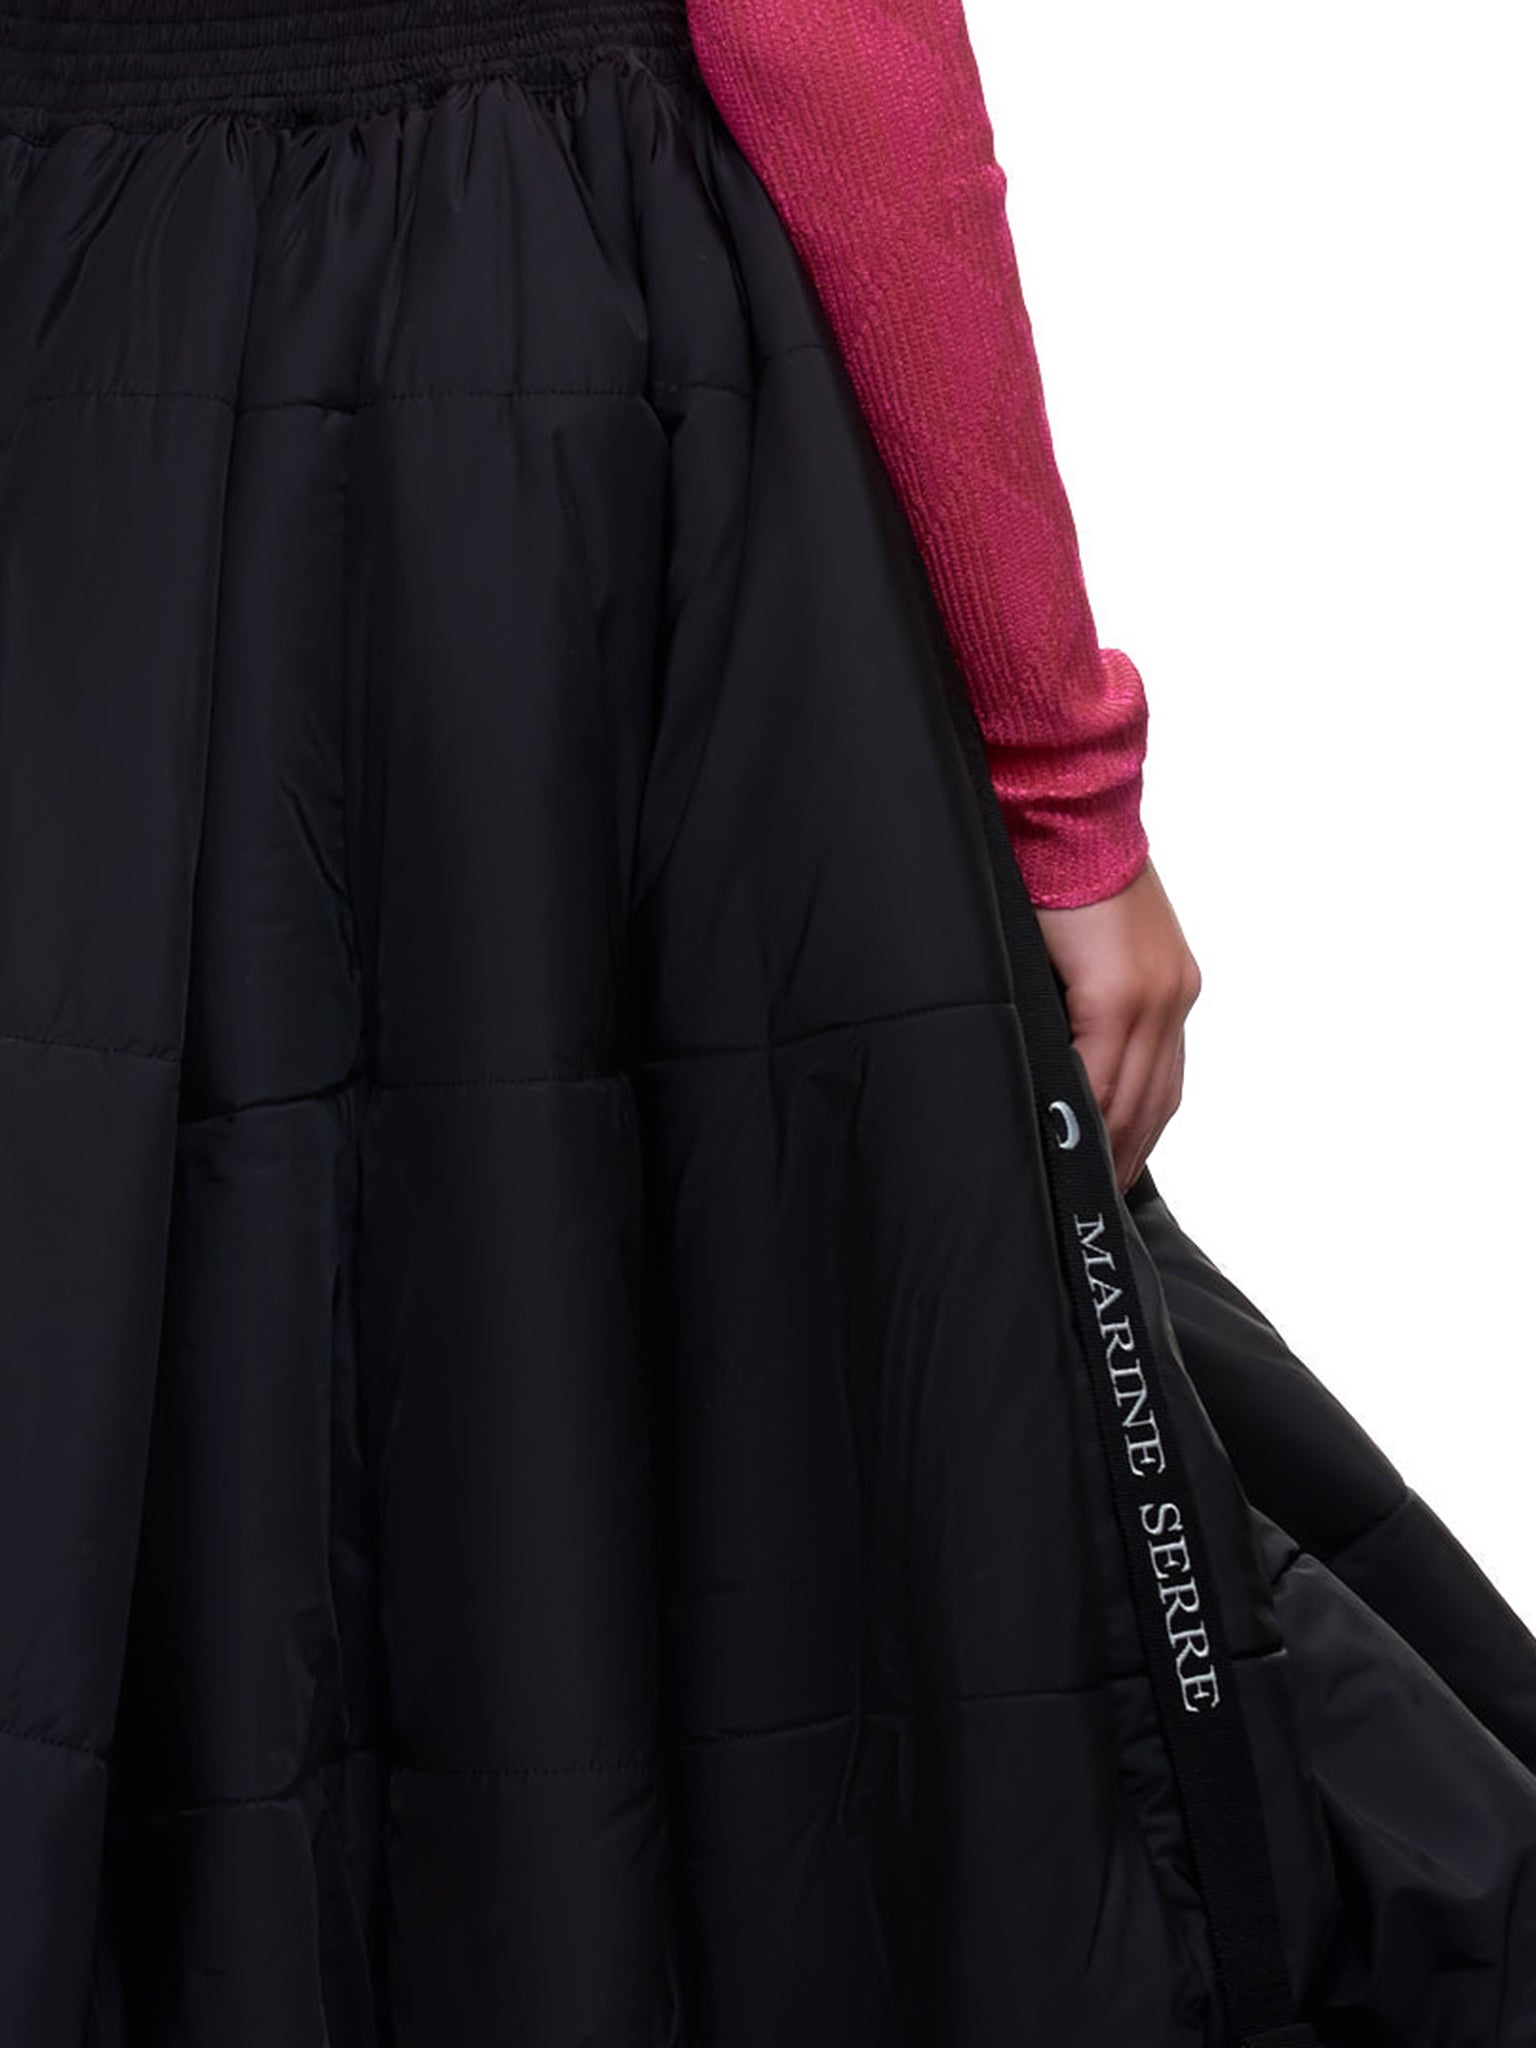 Padded Bubble Skirt (S055W-BLACK)